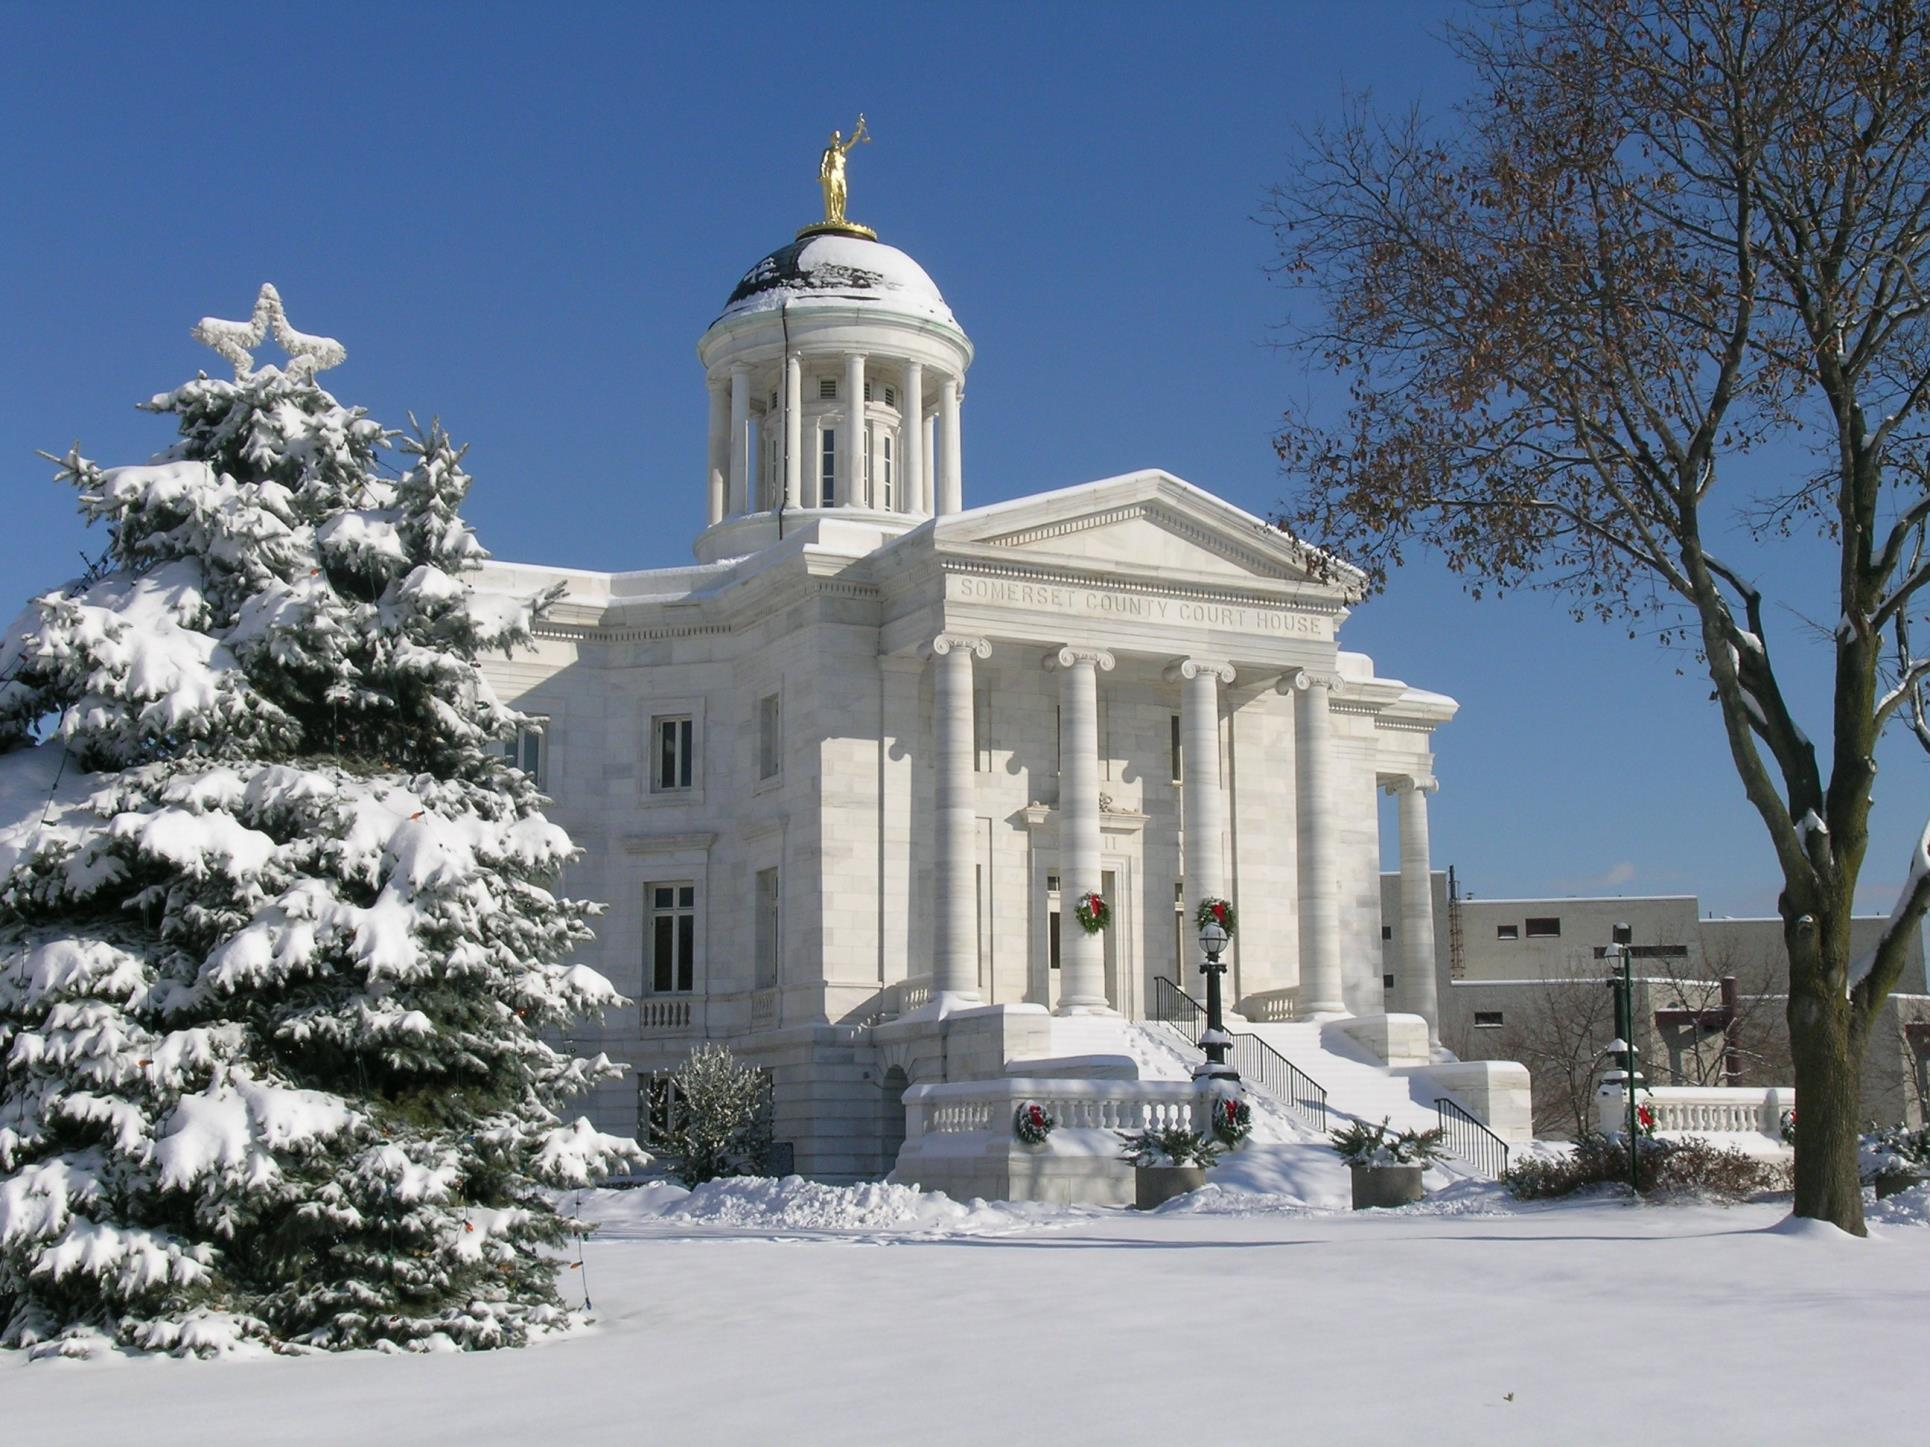 Historic Courthouse in the Snow(Dan Livak photo)